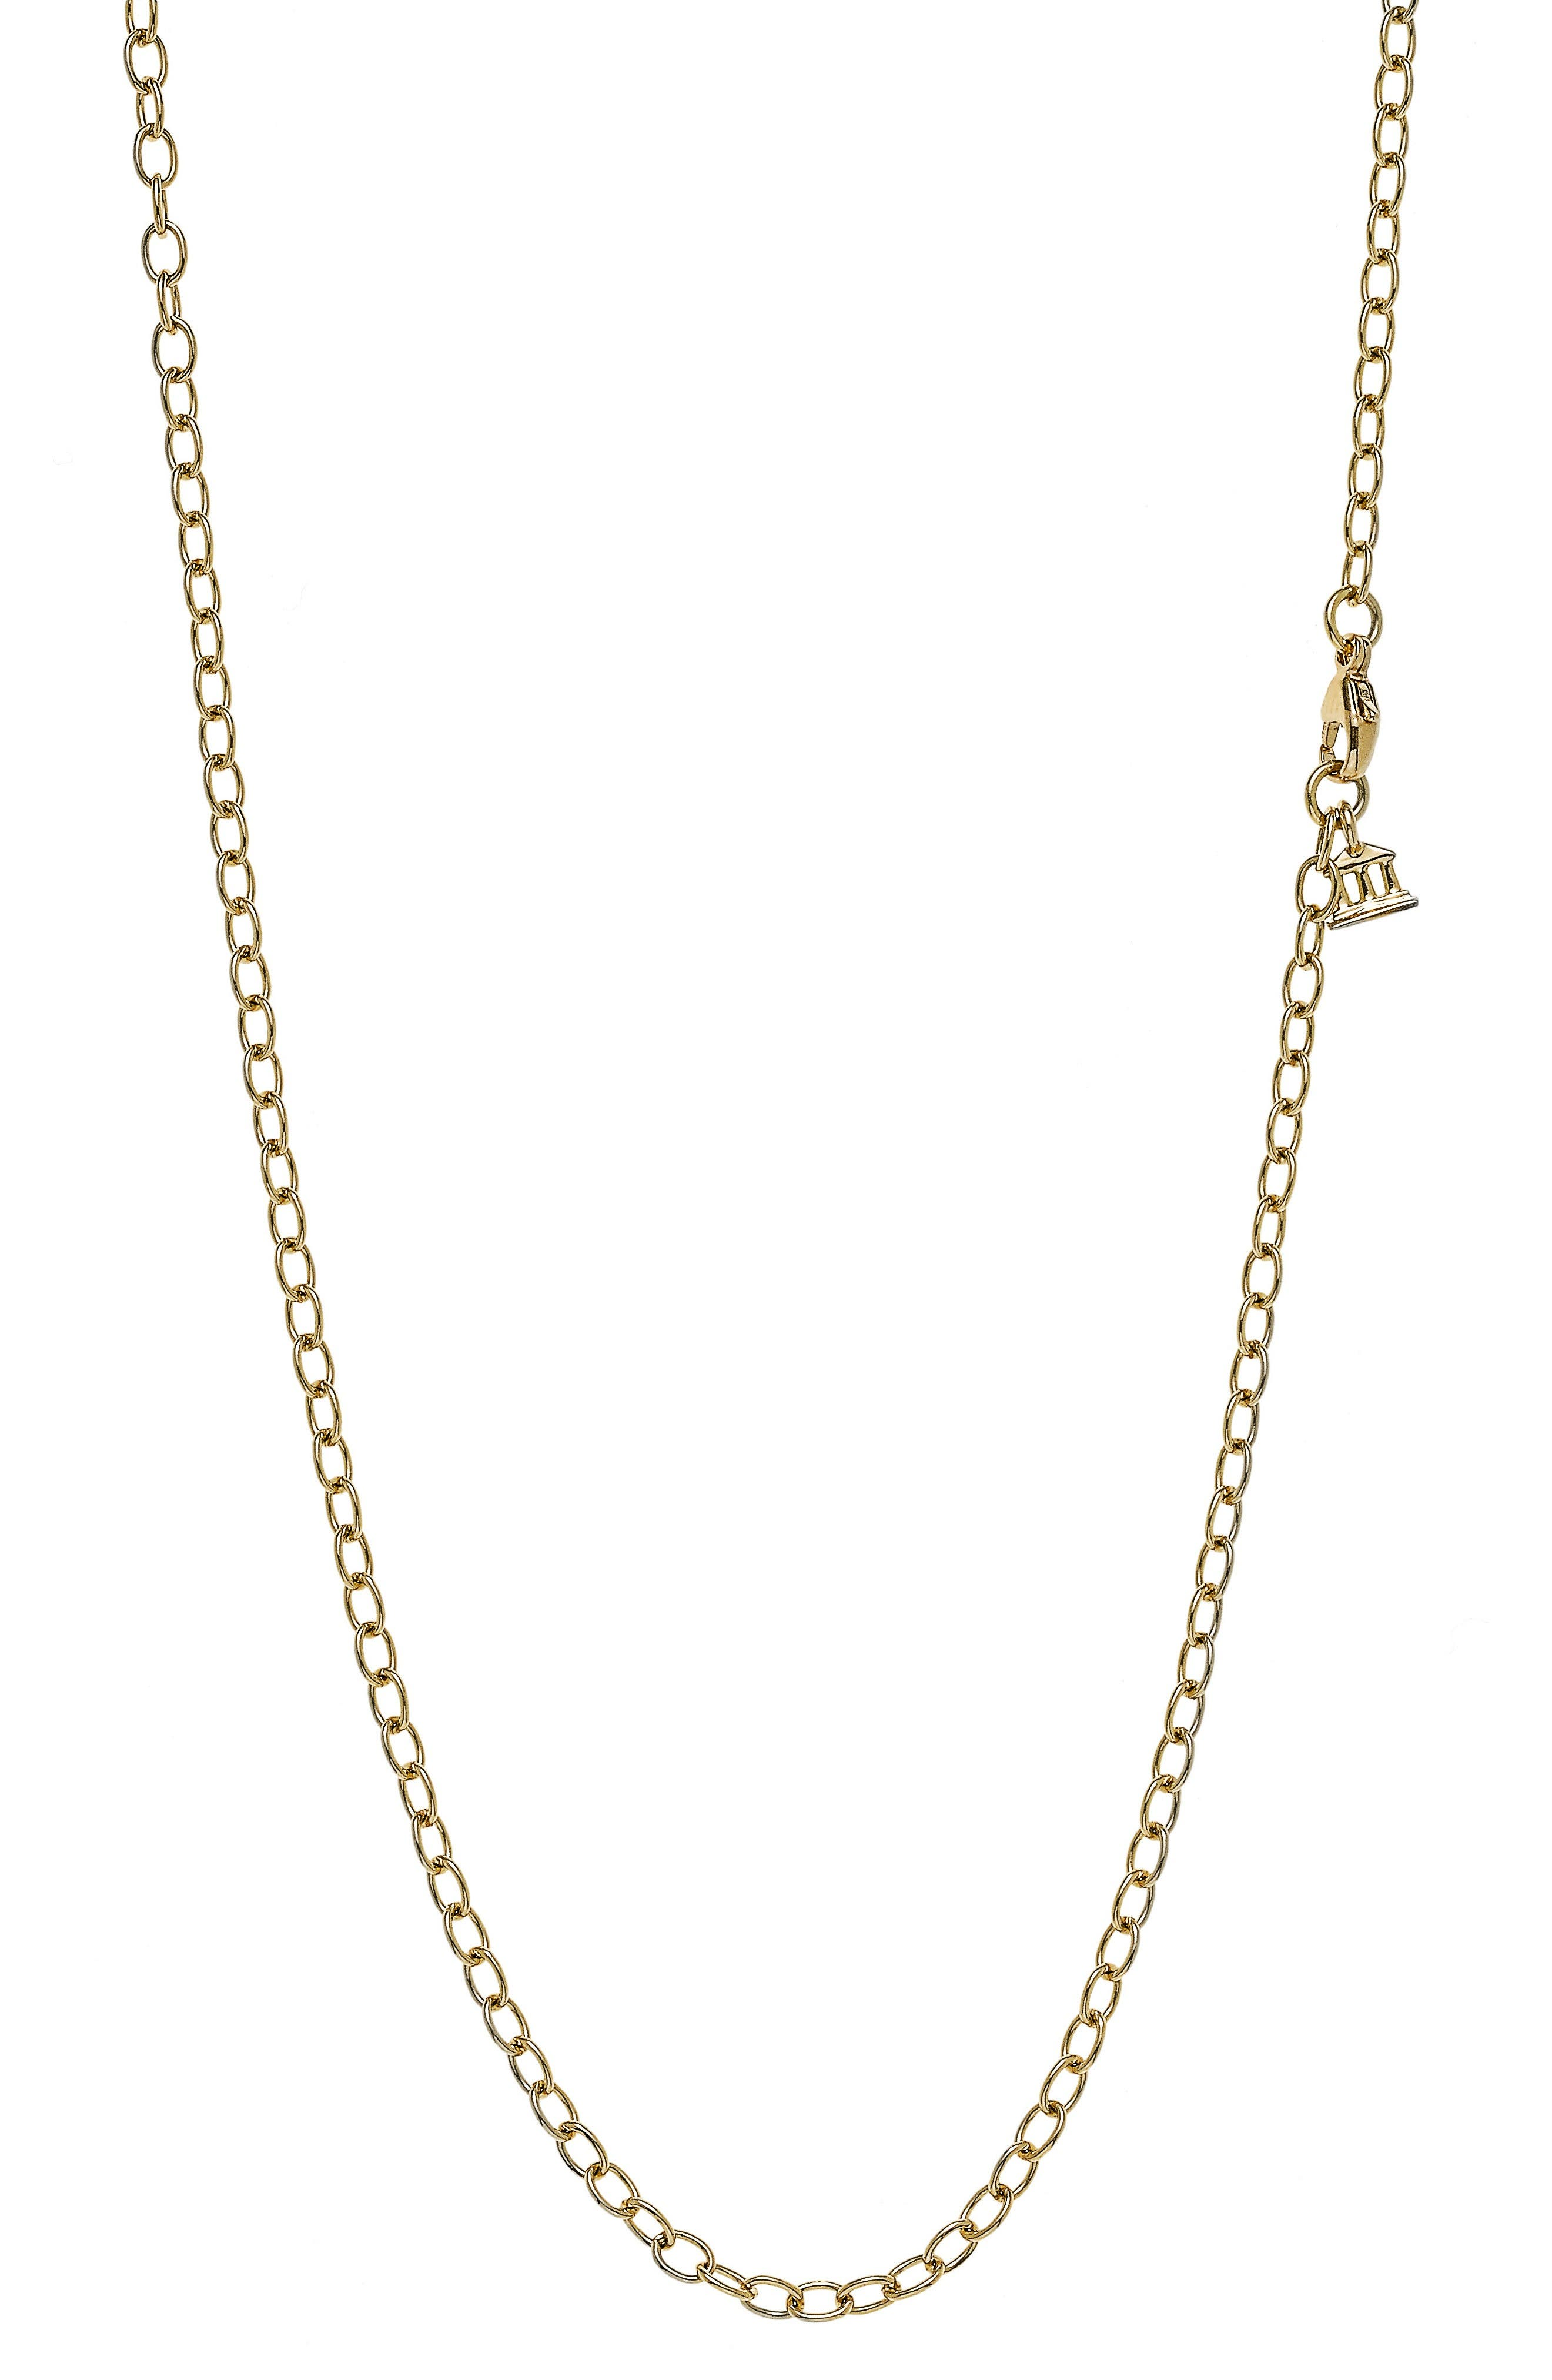 Main Image - Temple St. Clair Small Chain Necklace